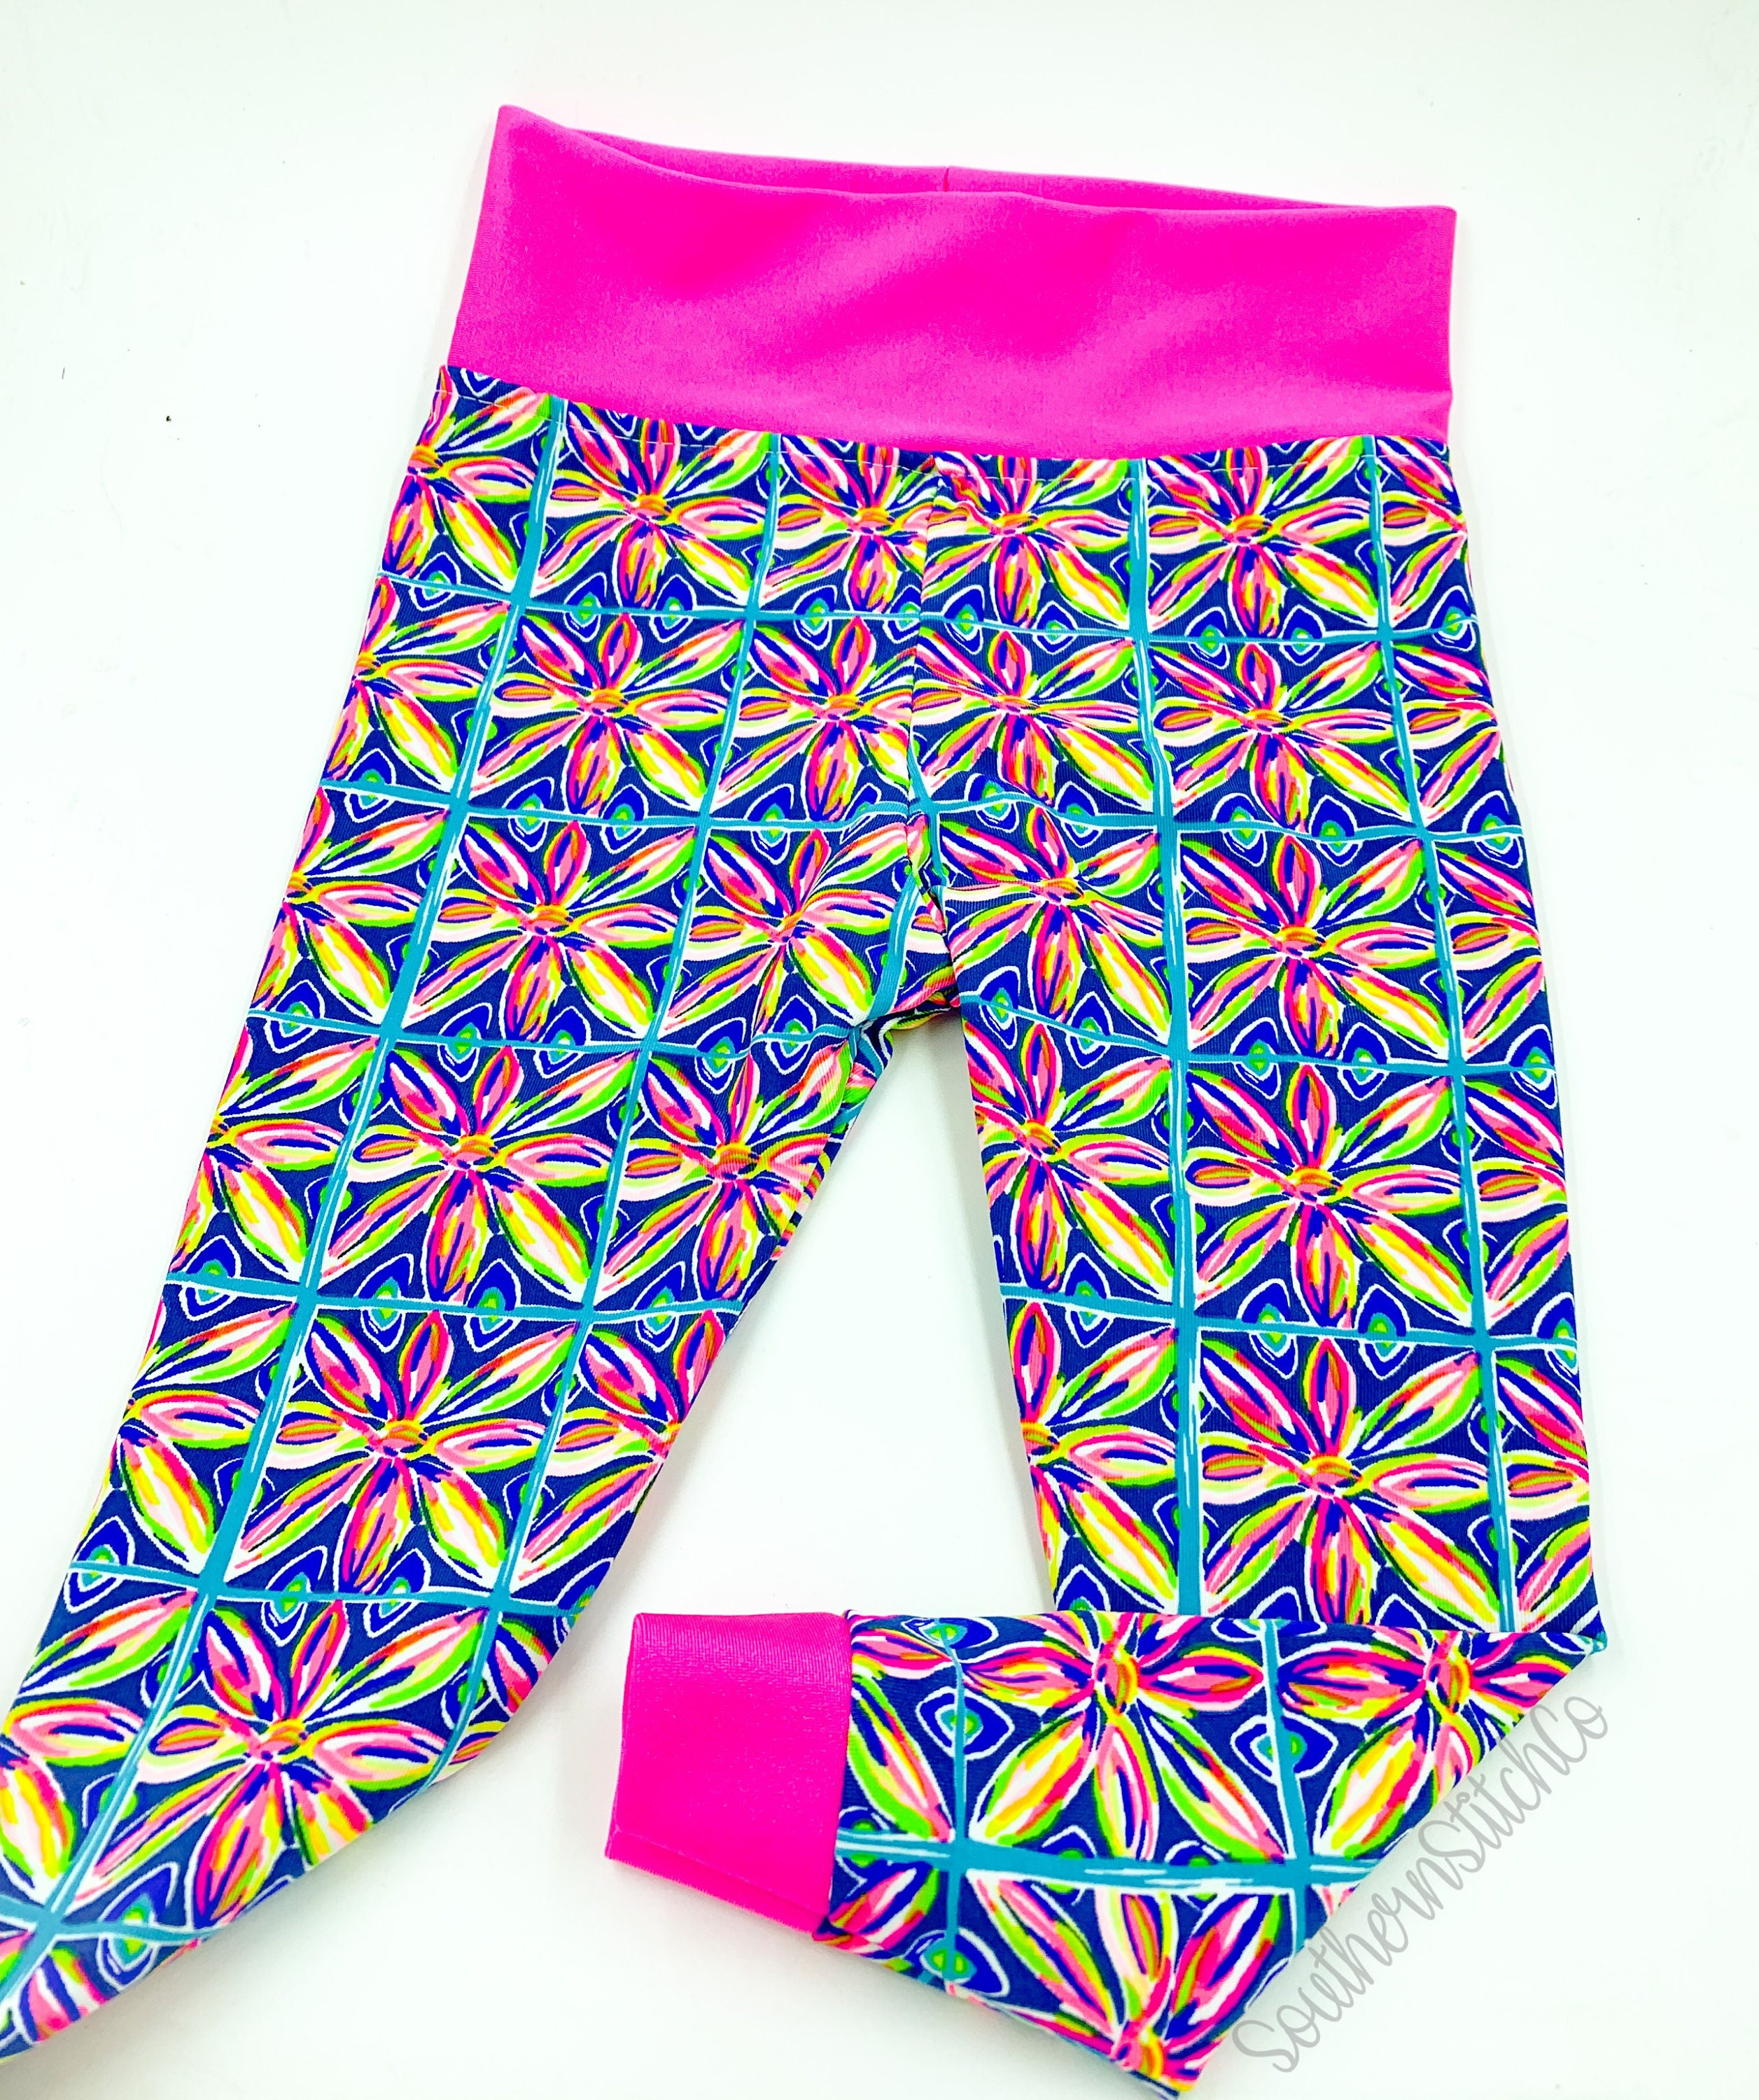 Limited Baby Leggings In Lilly Pulitzer Luxeletic Fabric